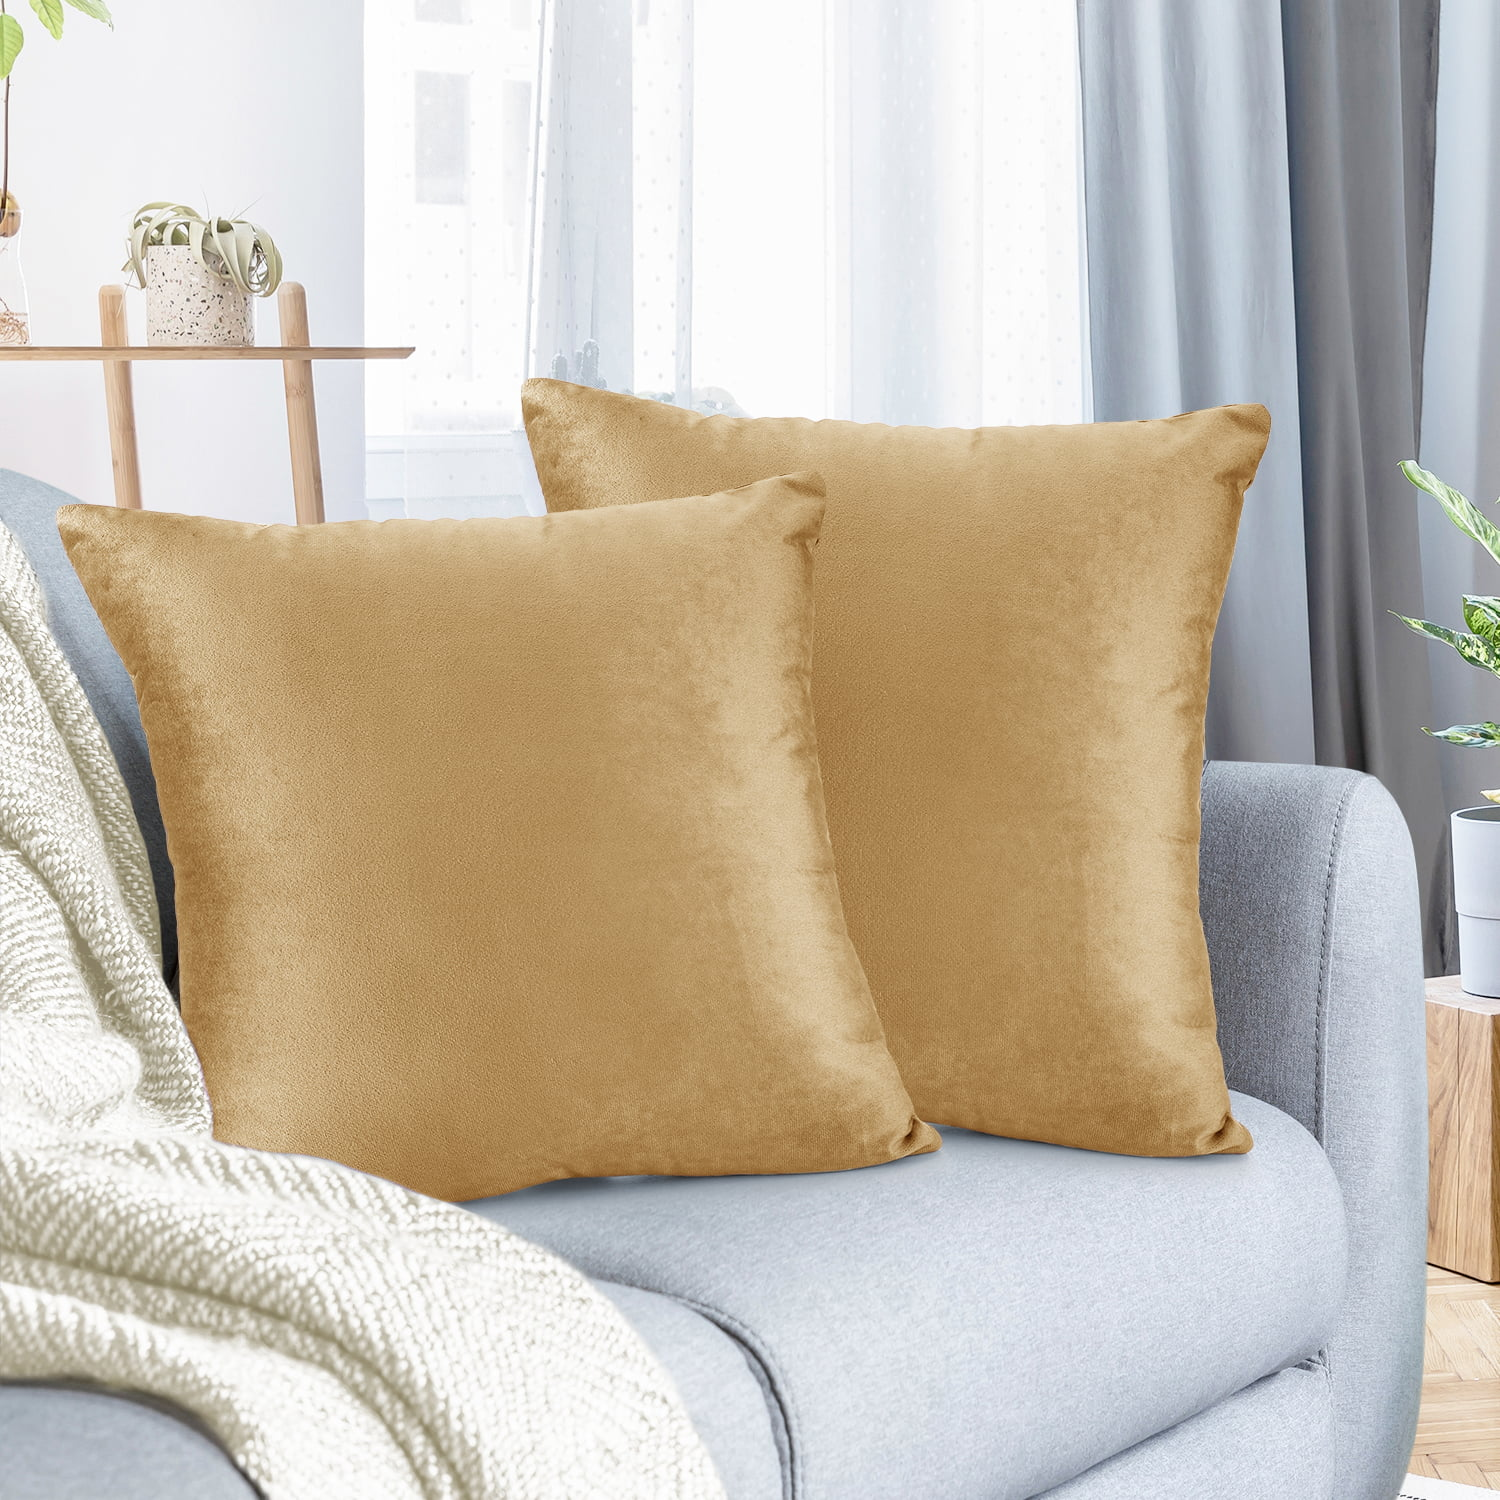 pack of 2 velvet throw pillow covers decorative soft square cushion cover 24 x 24